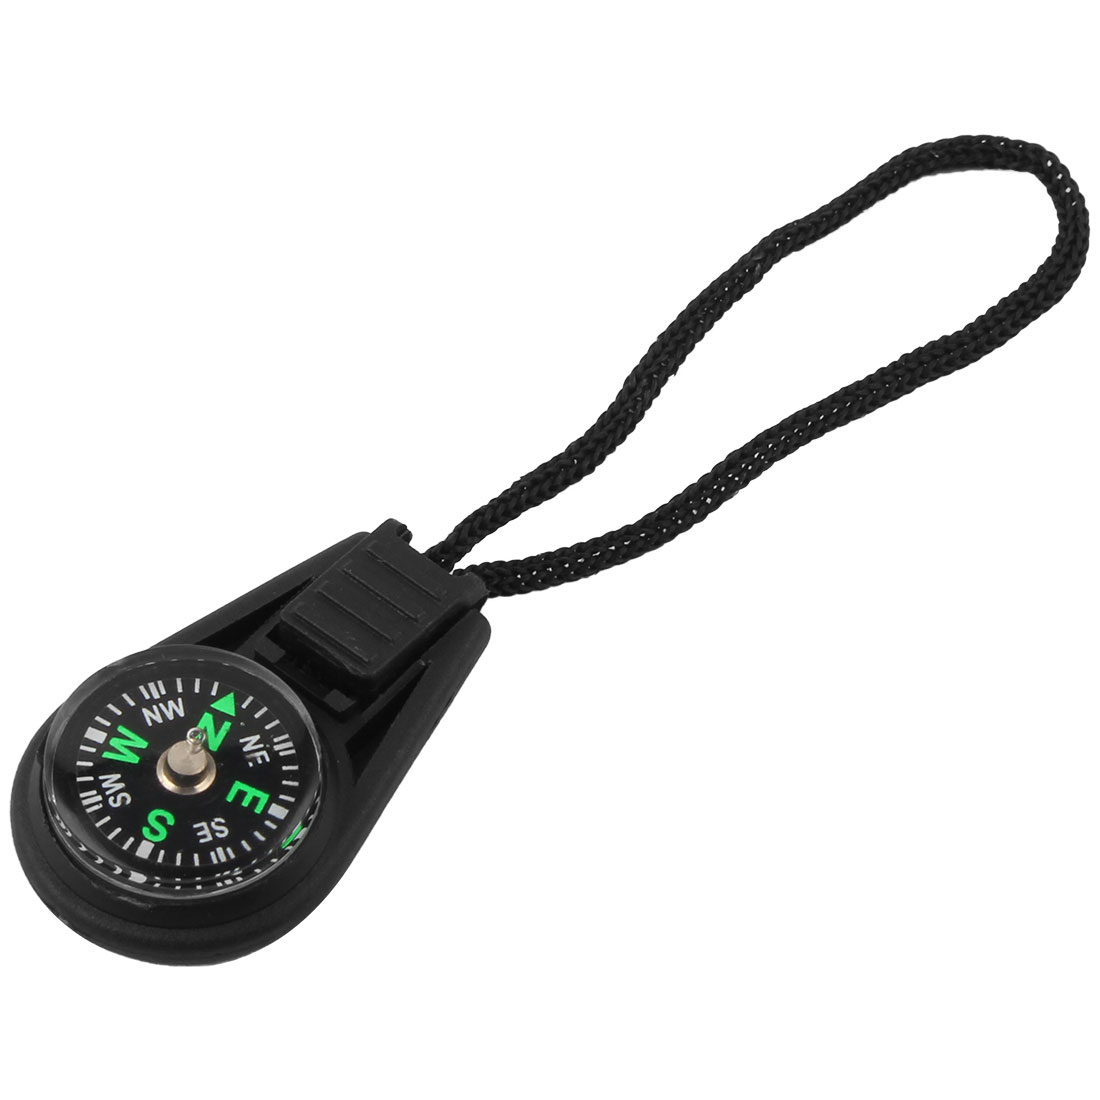 Mini Travel Mountaineering Portable Compass with Lanyard